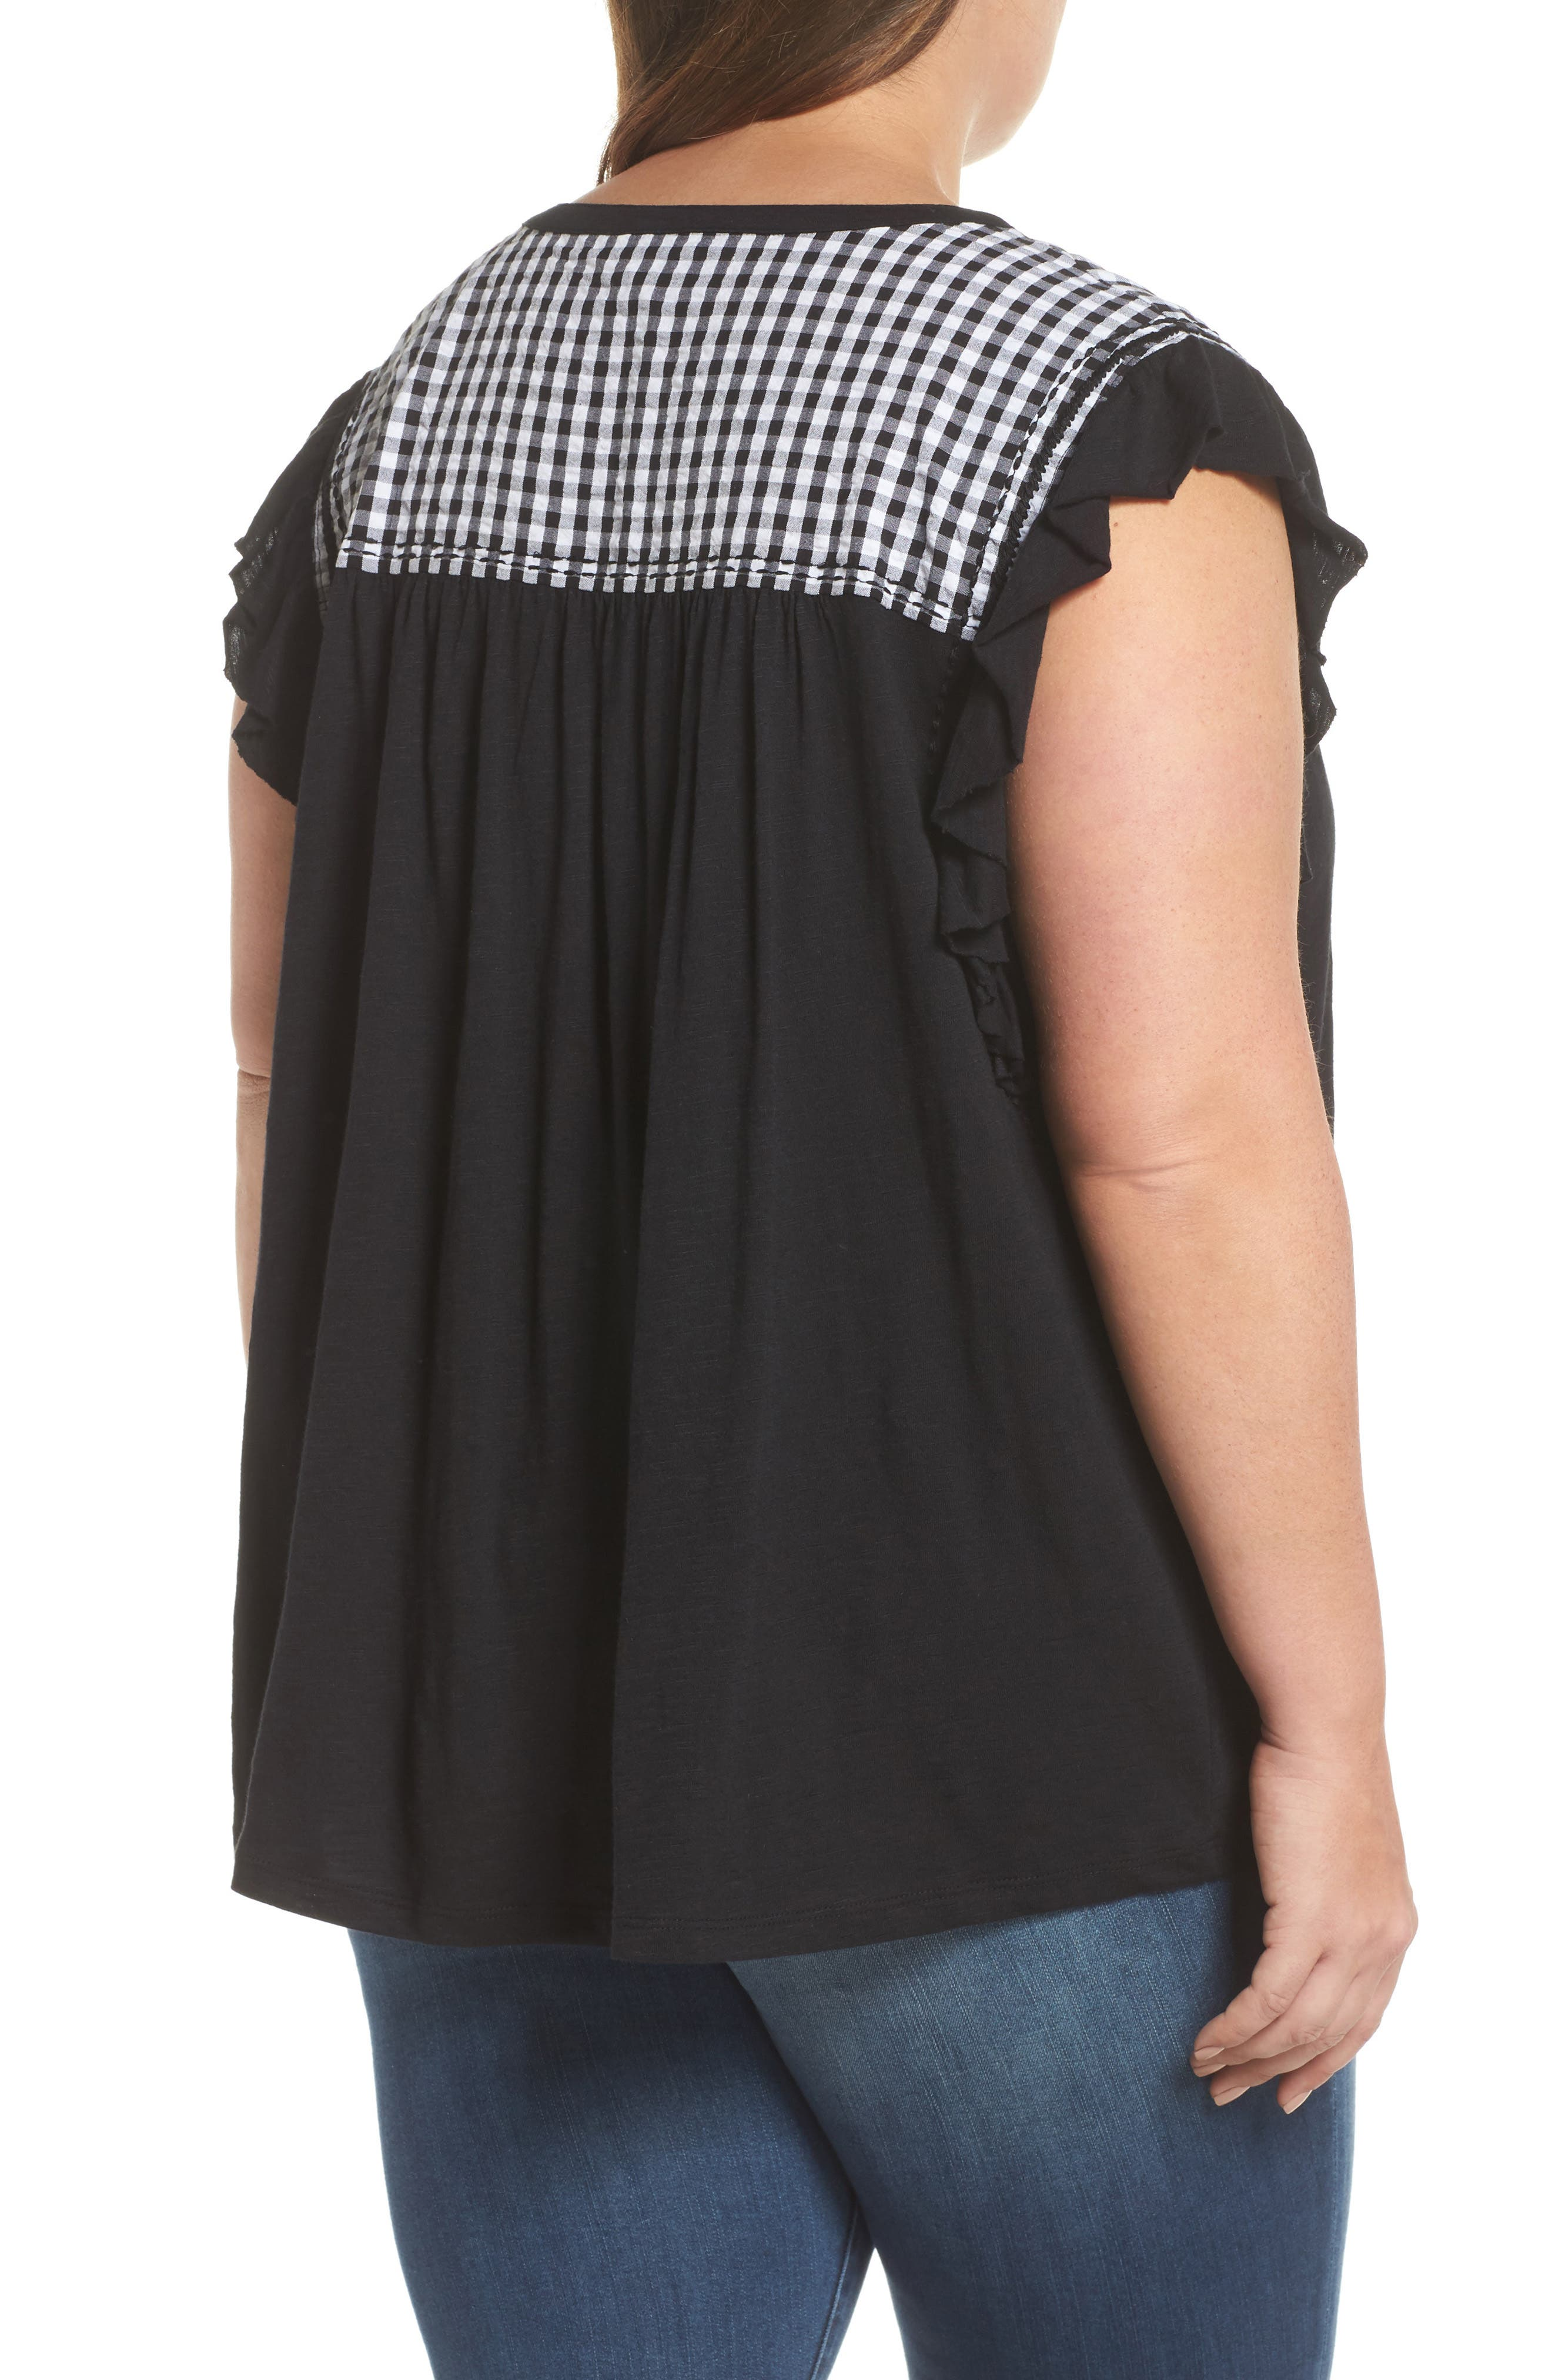 Mixed Media Top,                             Alternate thumbnail 2, color,                             Black- White Gingham